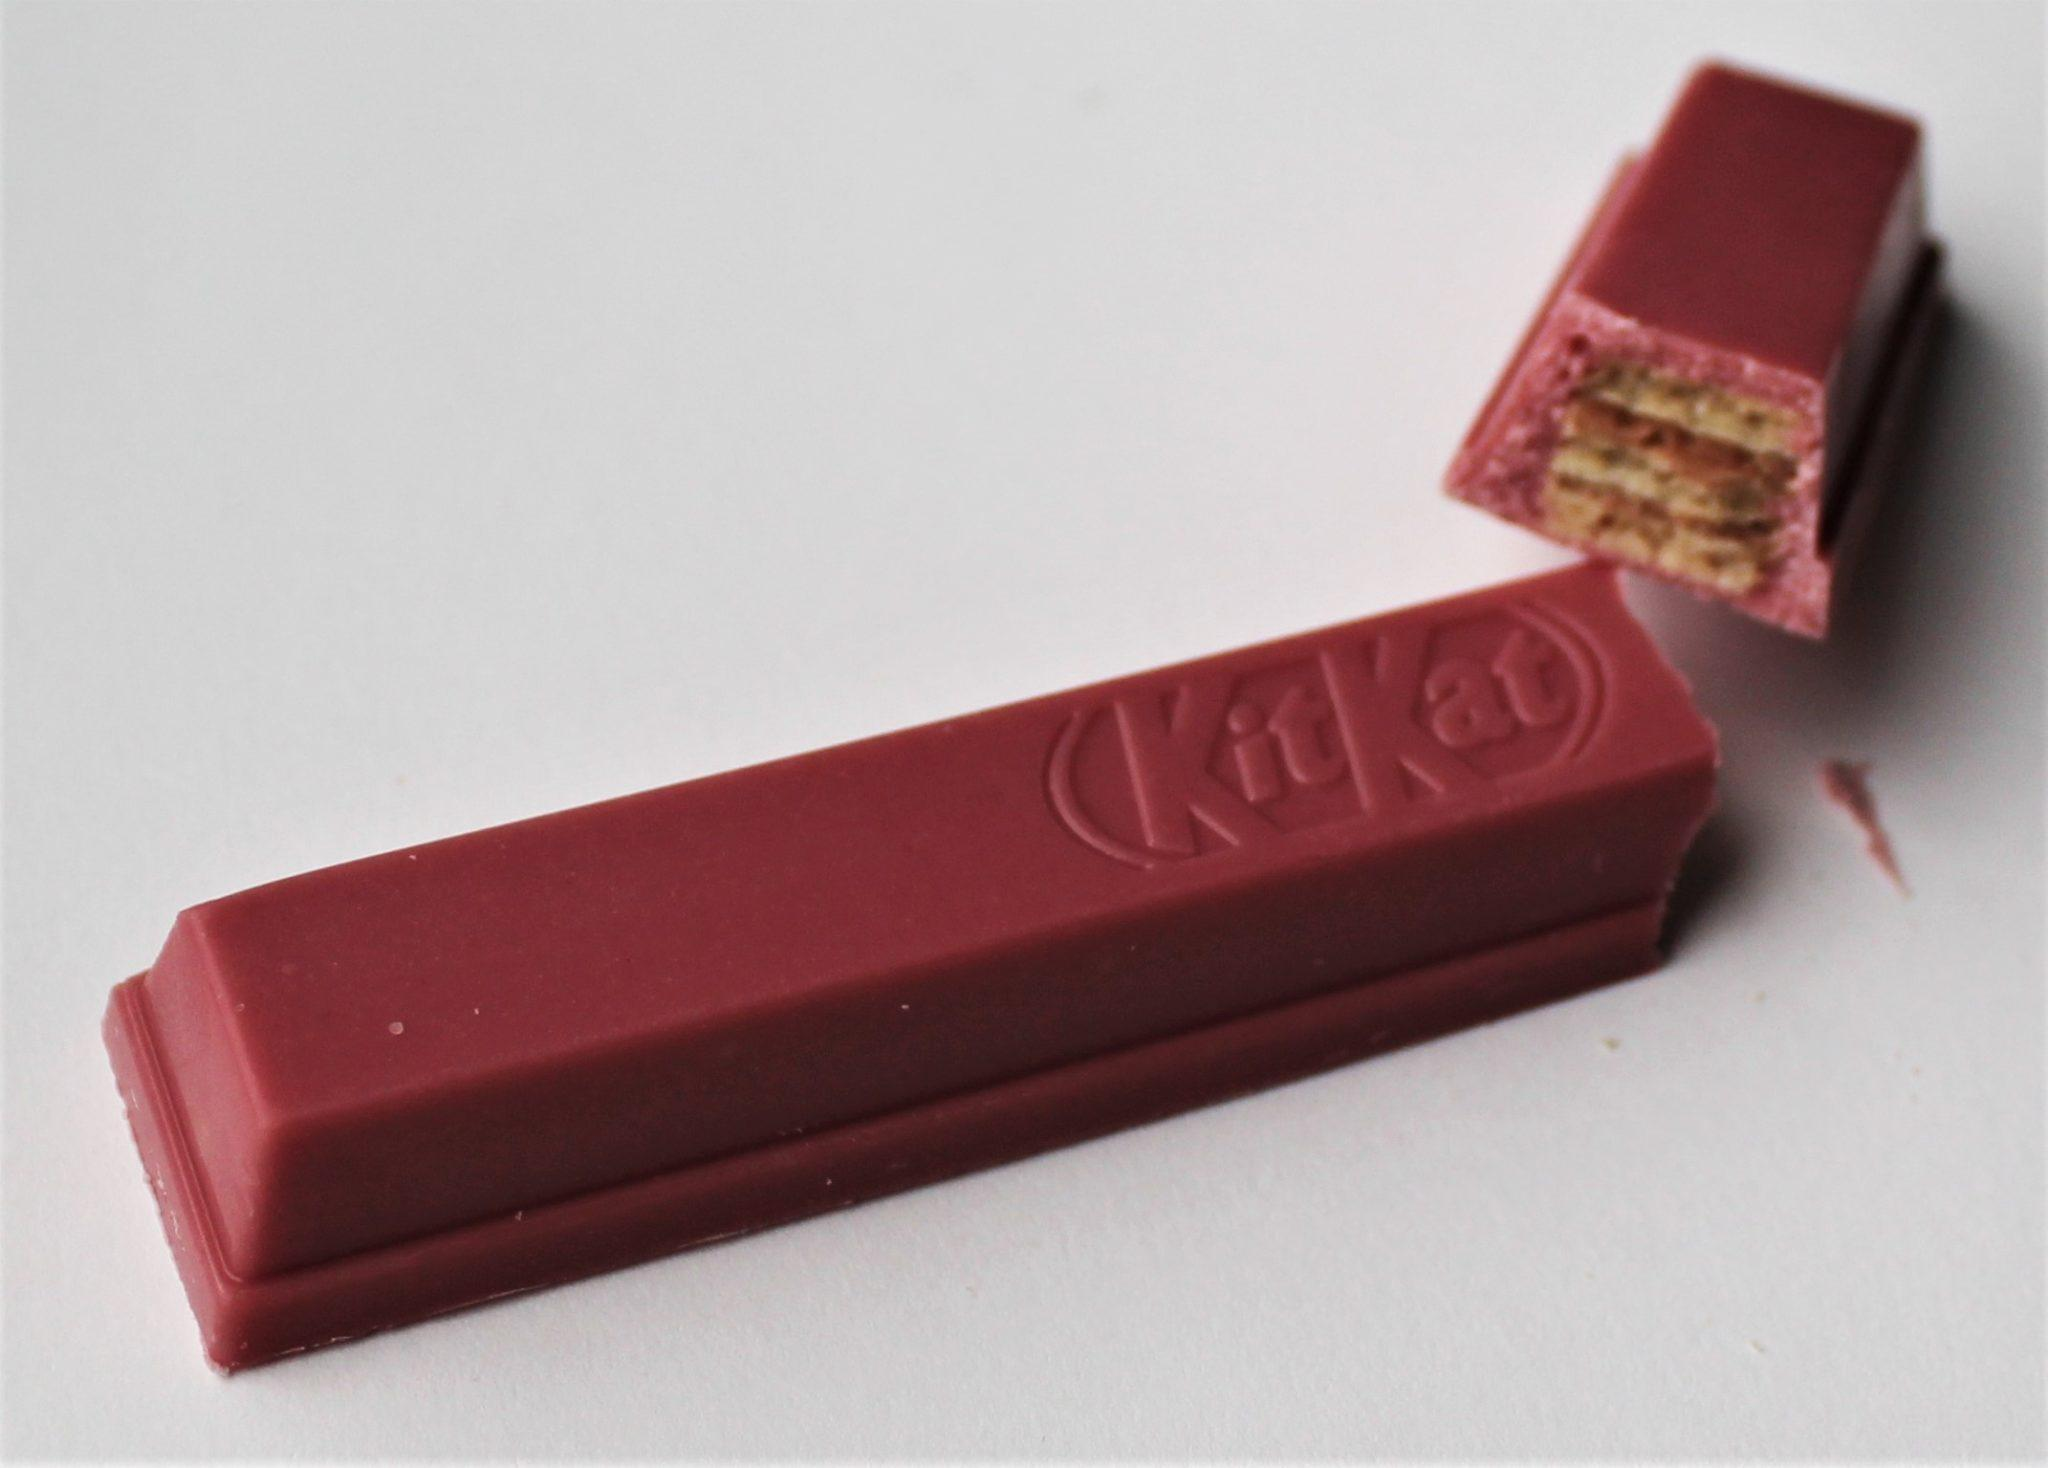 Ruby Chocolate: Where To Buy It & What It Is